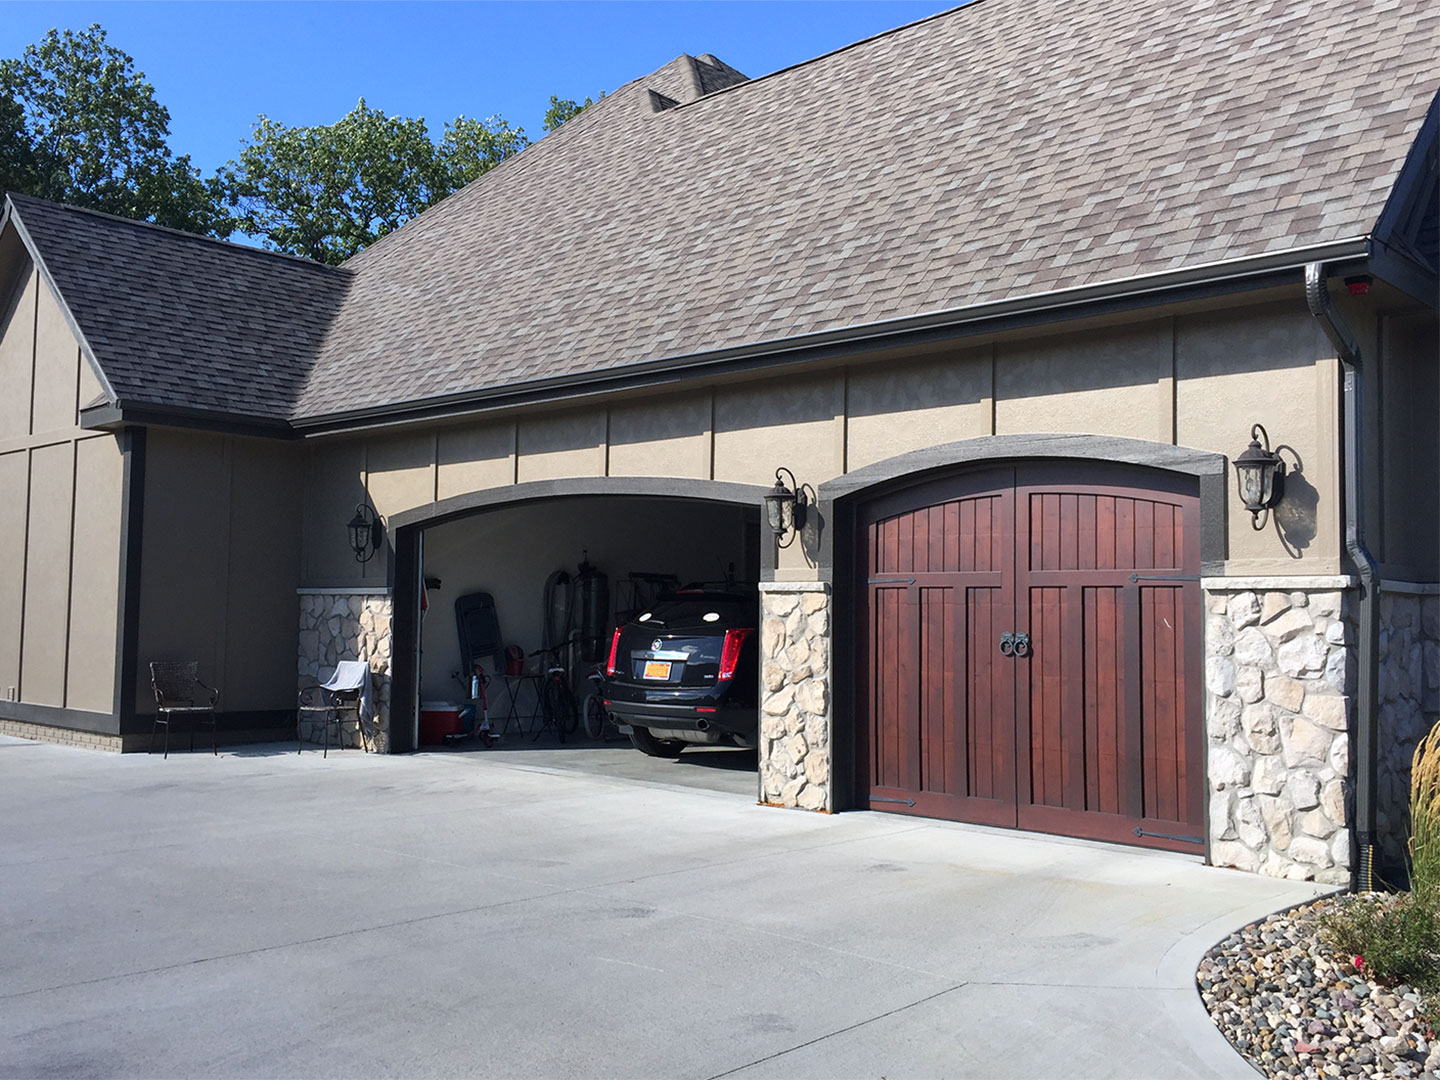 Side view of the Waukee, IA homes garage with open style gutters.